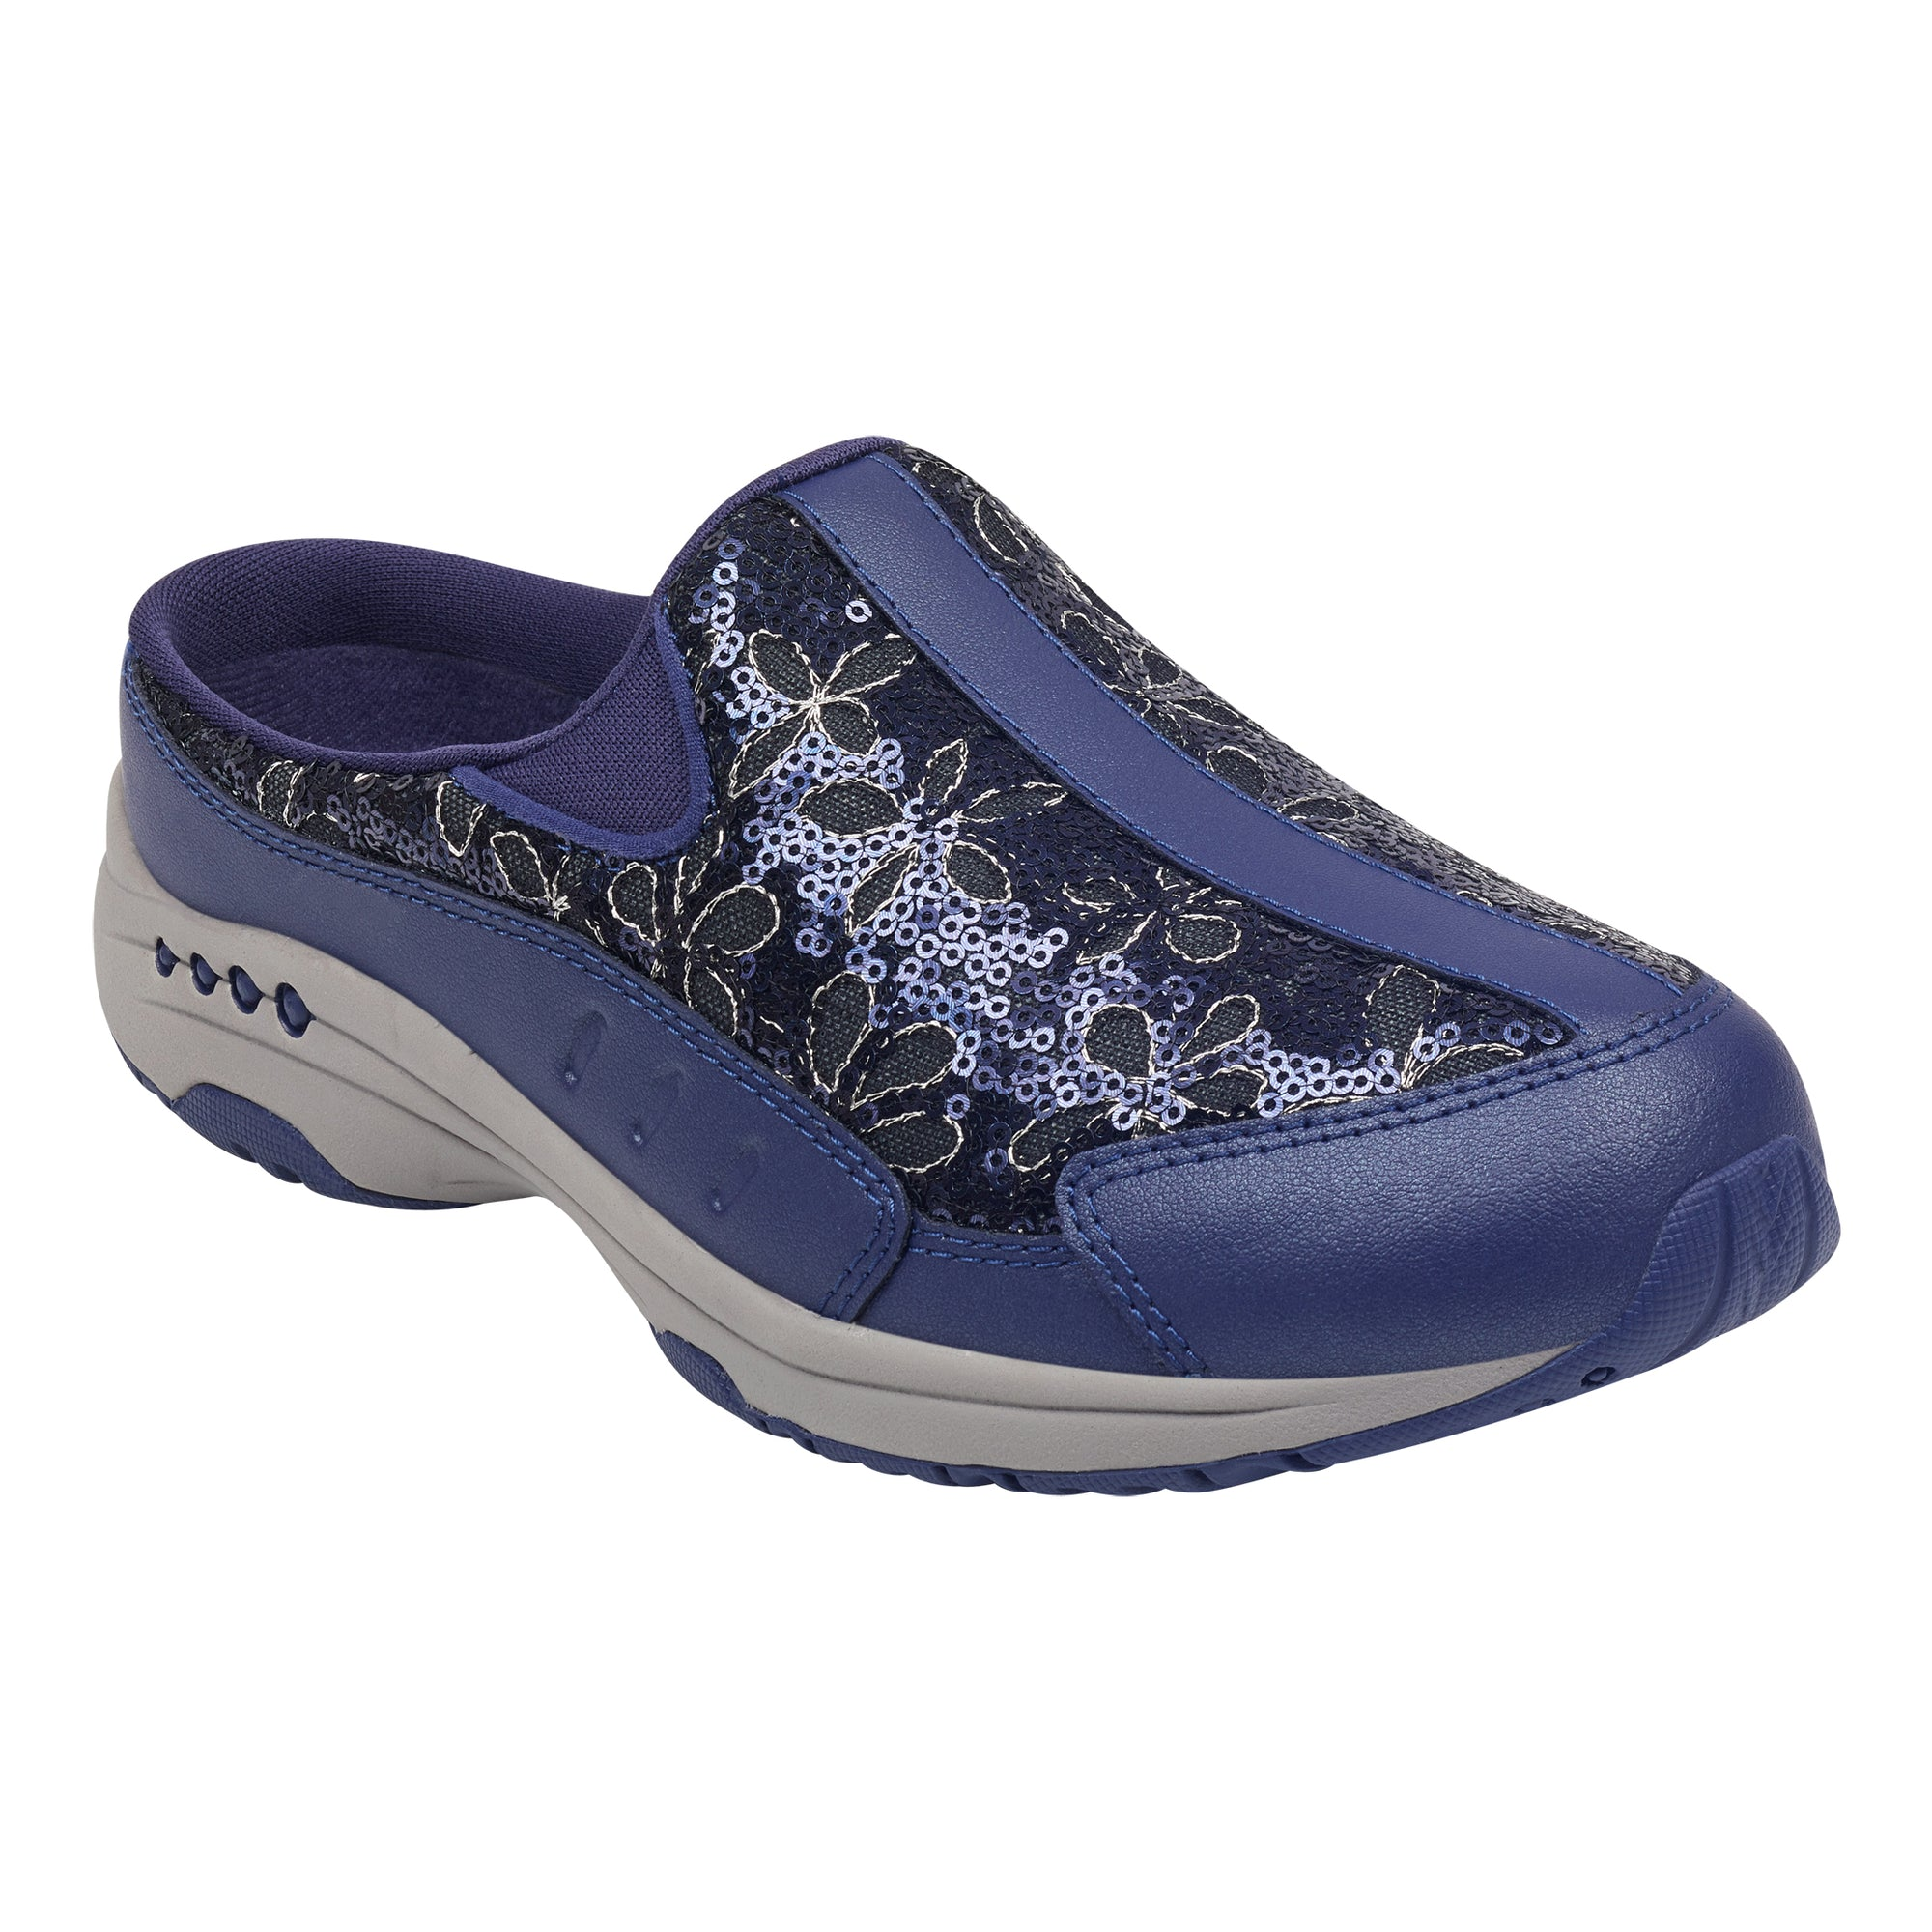 Travelflower Clogs